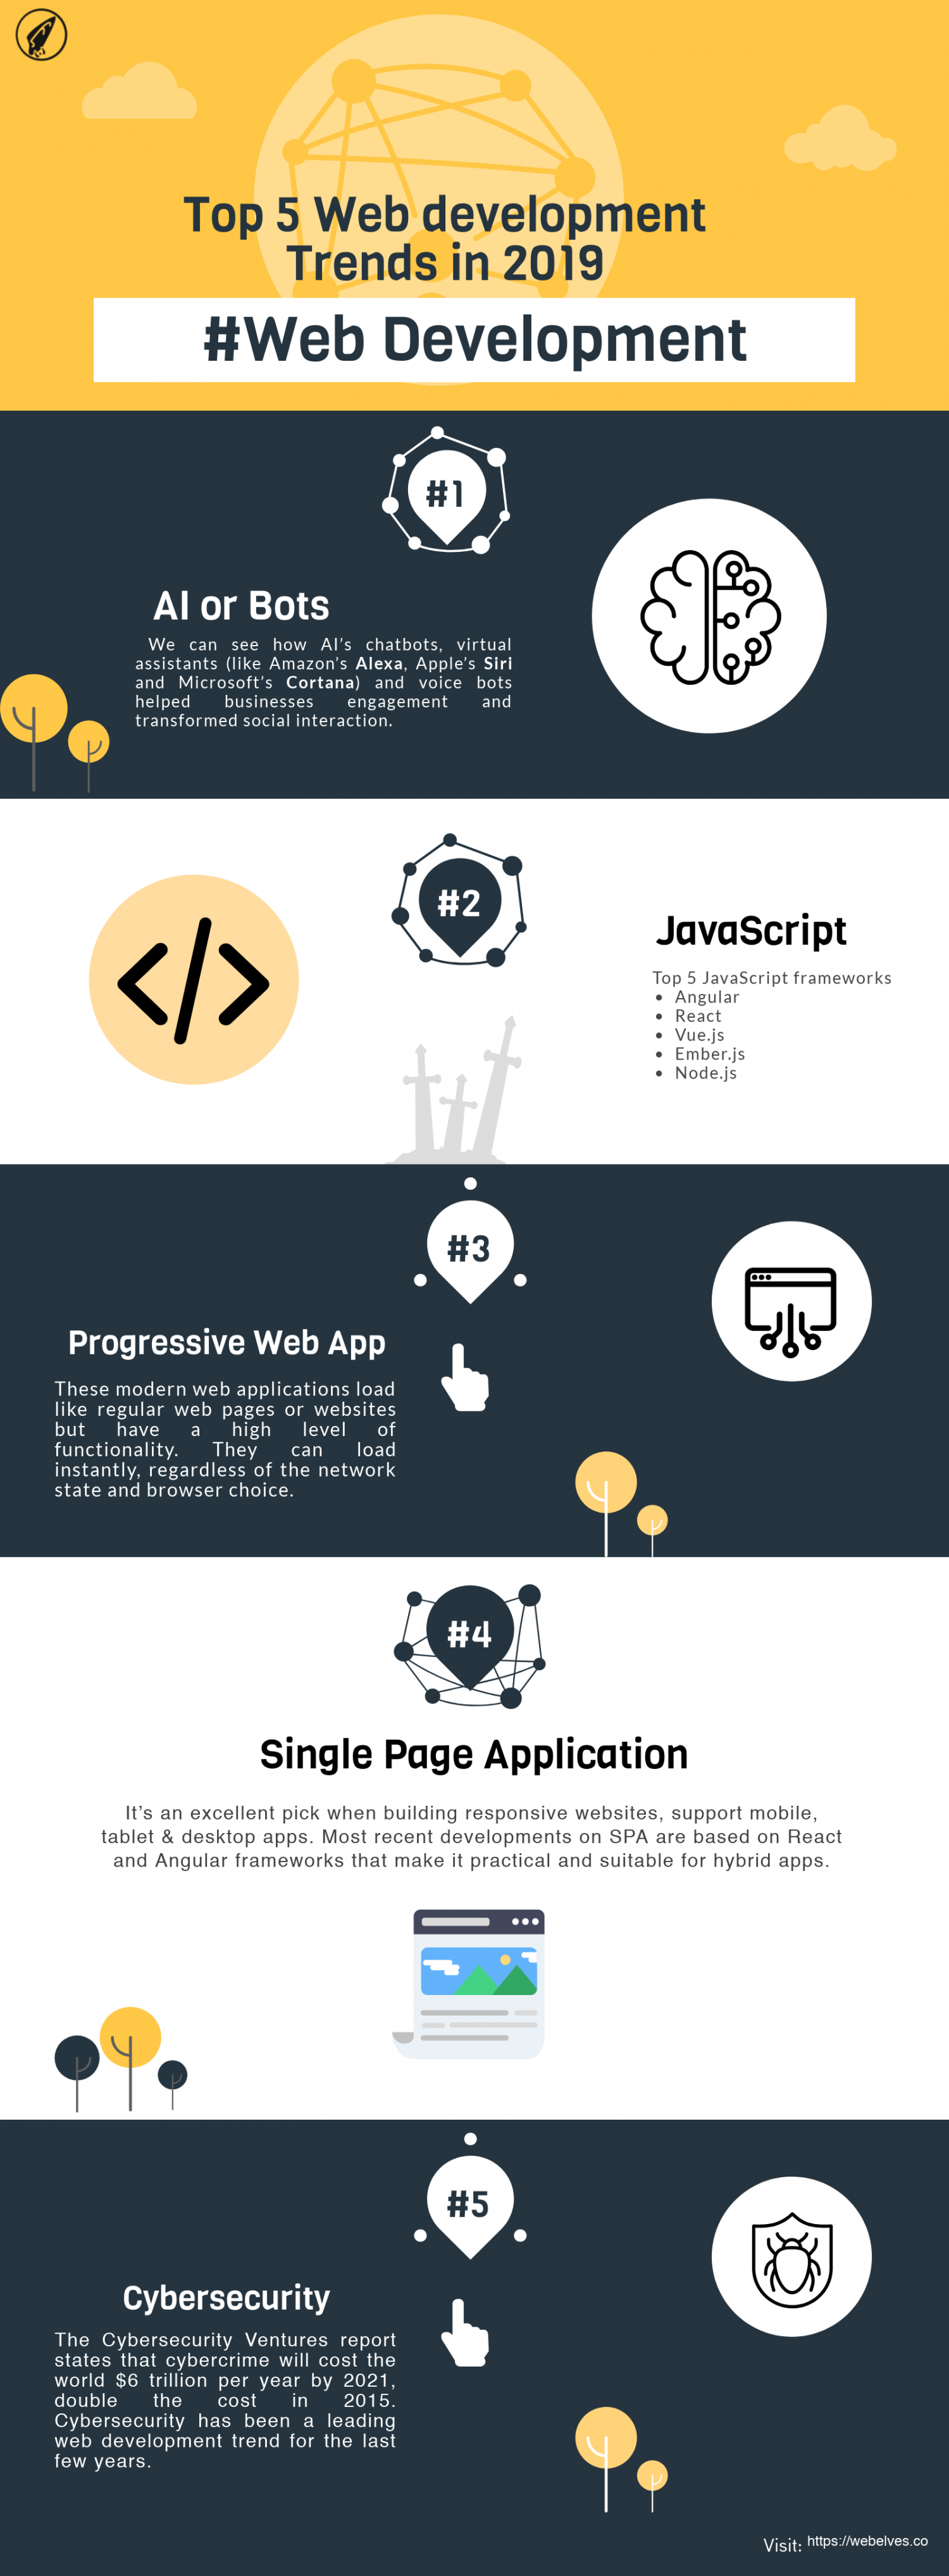 Top 5 Web Development Trends Infographic